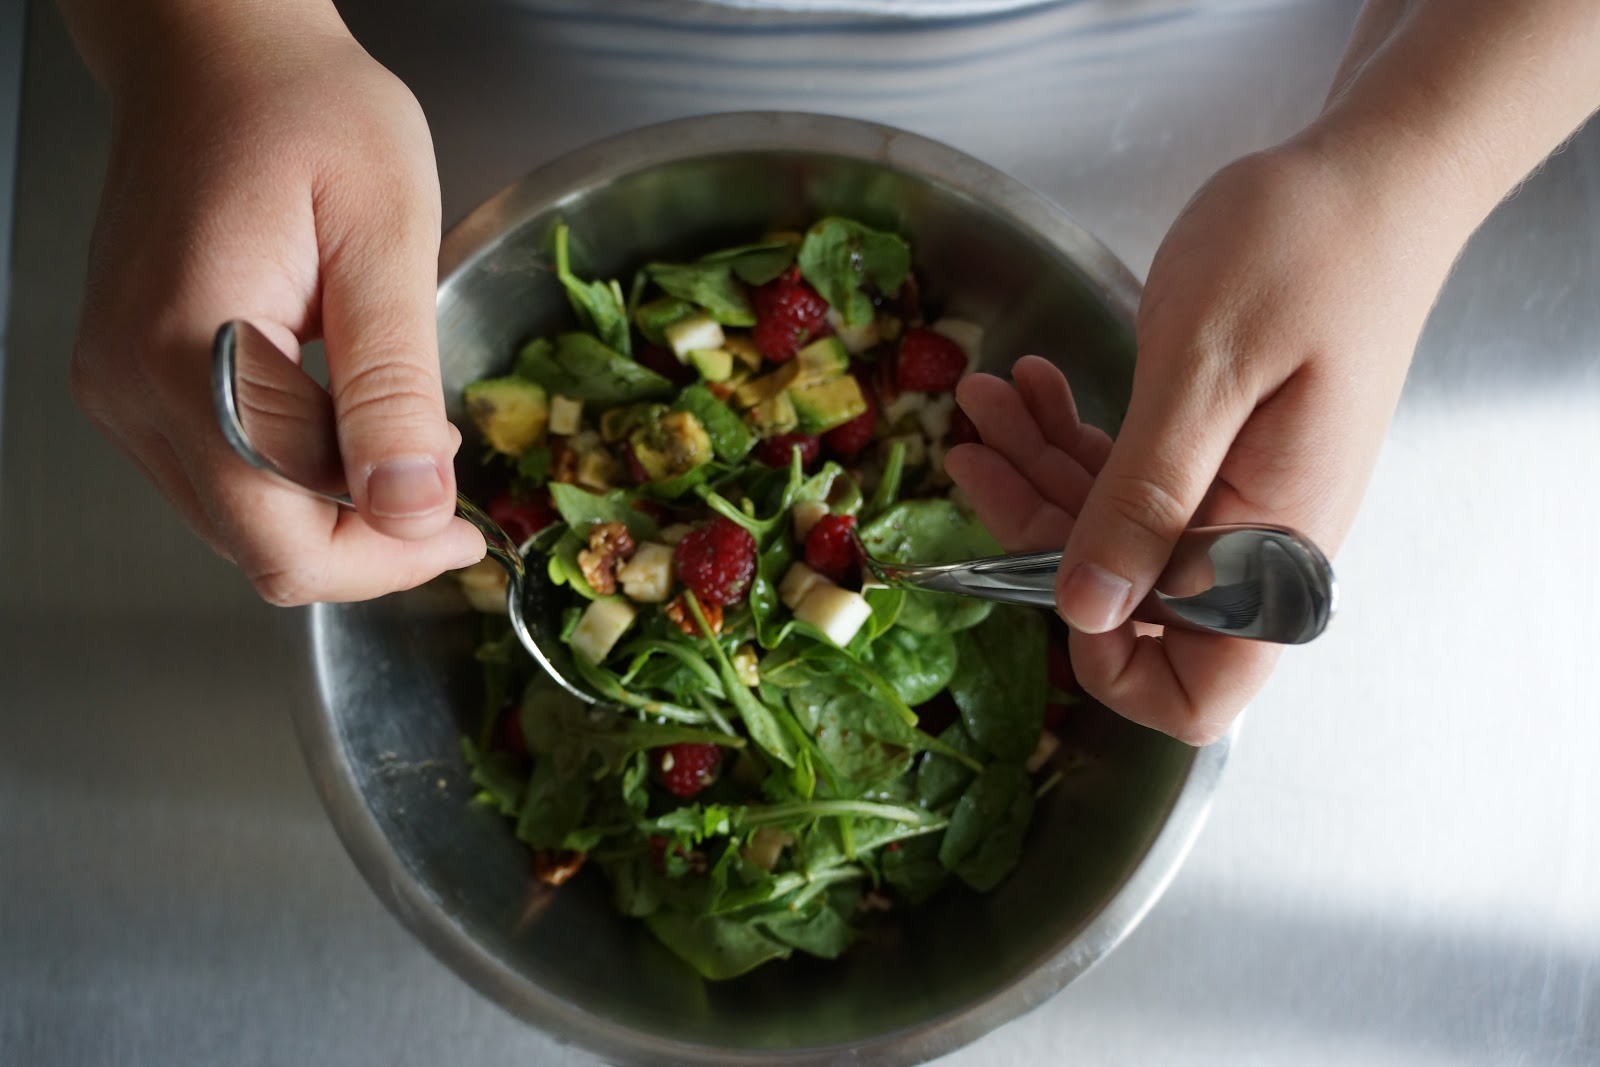 tossing a salad